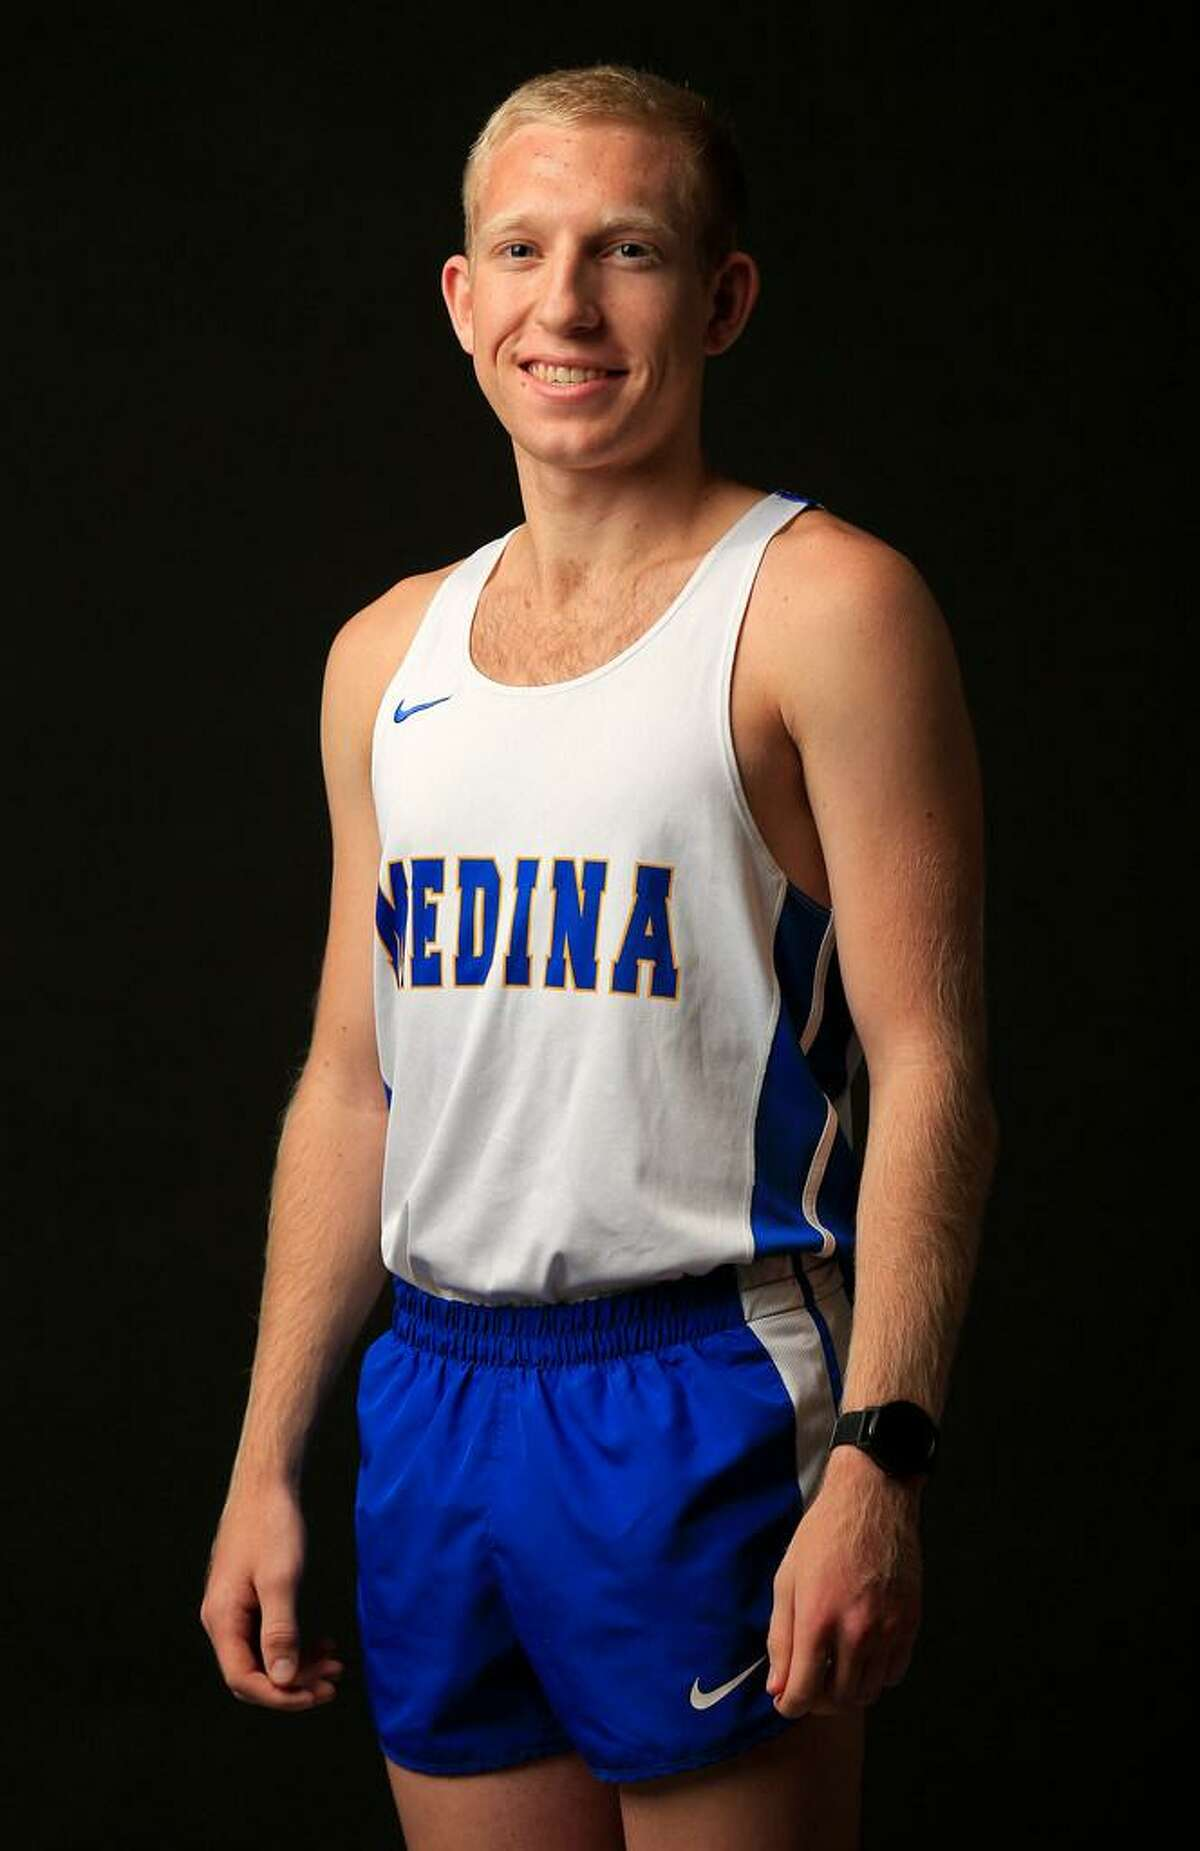 Austin Zirkel of Medina is the 2017 Express-News All-Area cross country Boys Athlete of the Year.